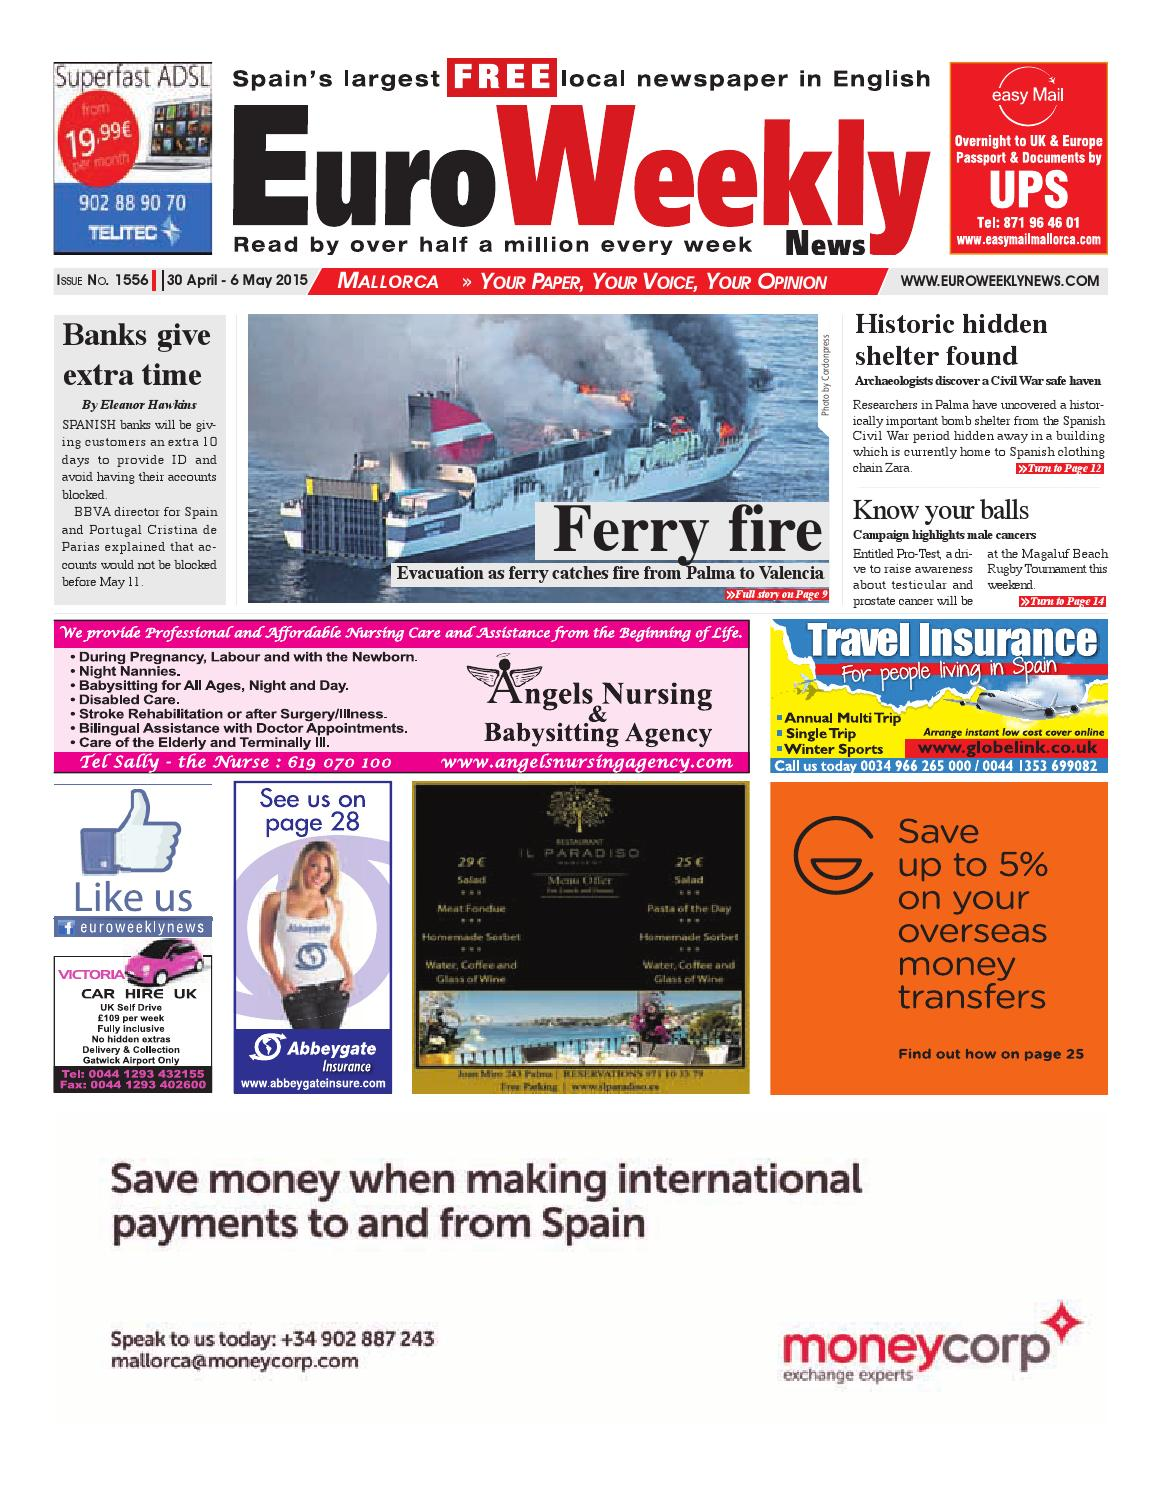 Euro weekly news mallorca 30 april 6 may 2015 issue 1556 by euro euro weekly news mallorca 30 april 6 may 2015 issue 1556 by euro weekly news media sa issuu fandeluxe Images